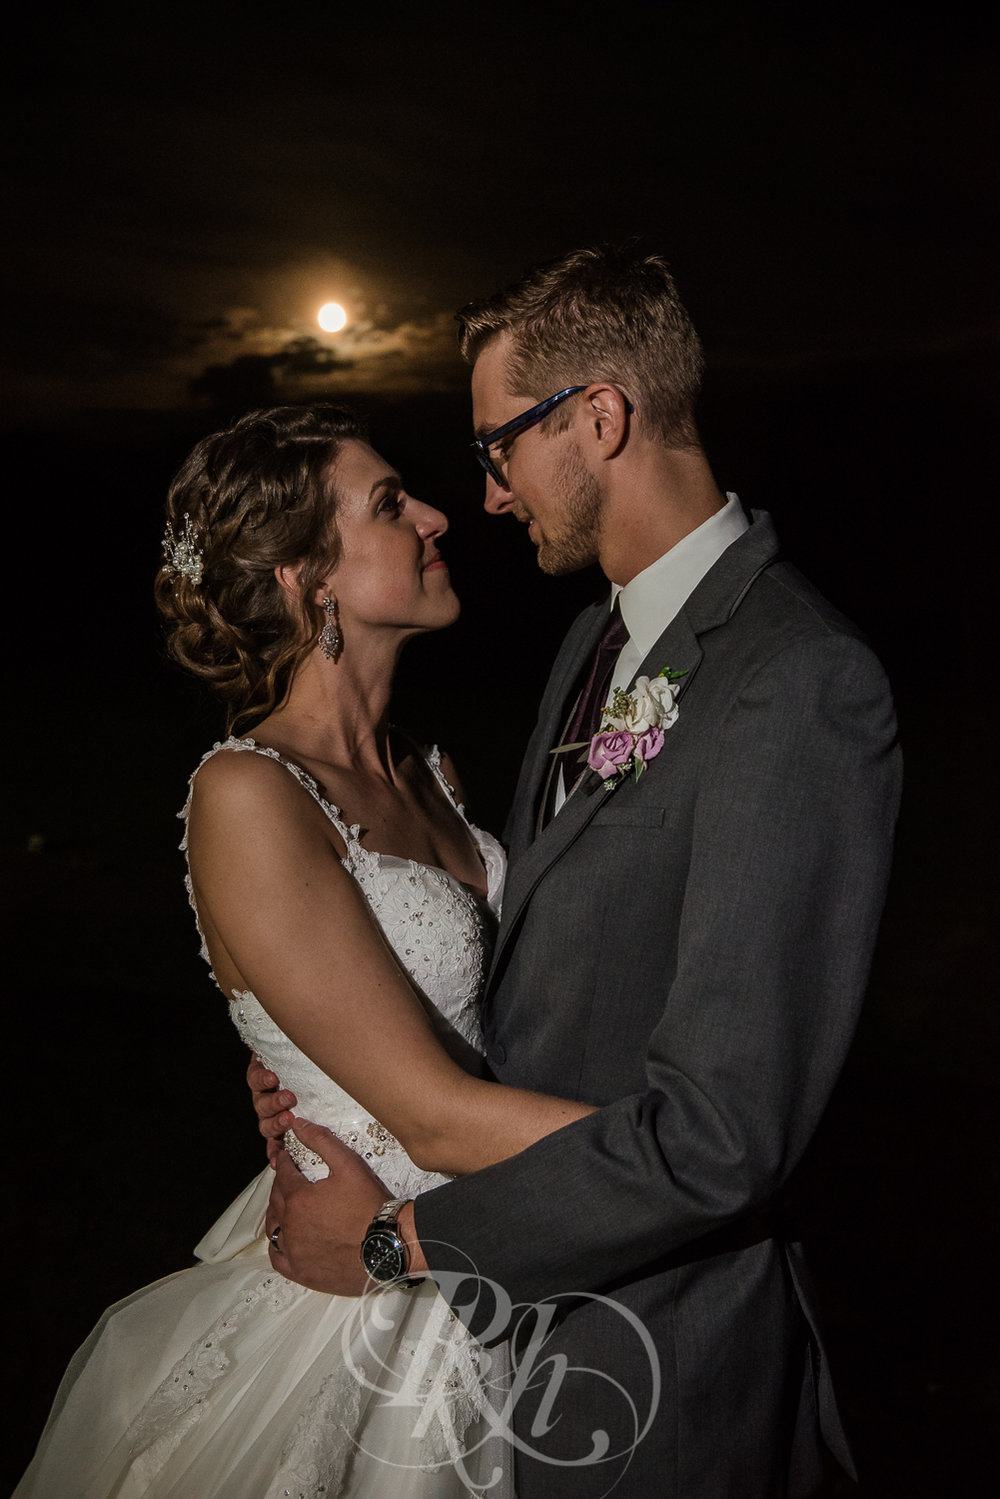 Monica & Zach - Minnesota Wedding Photography - RKH Images - Samples -43.jpg